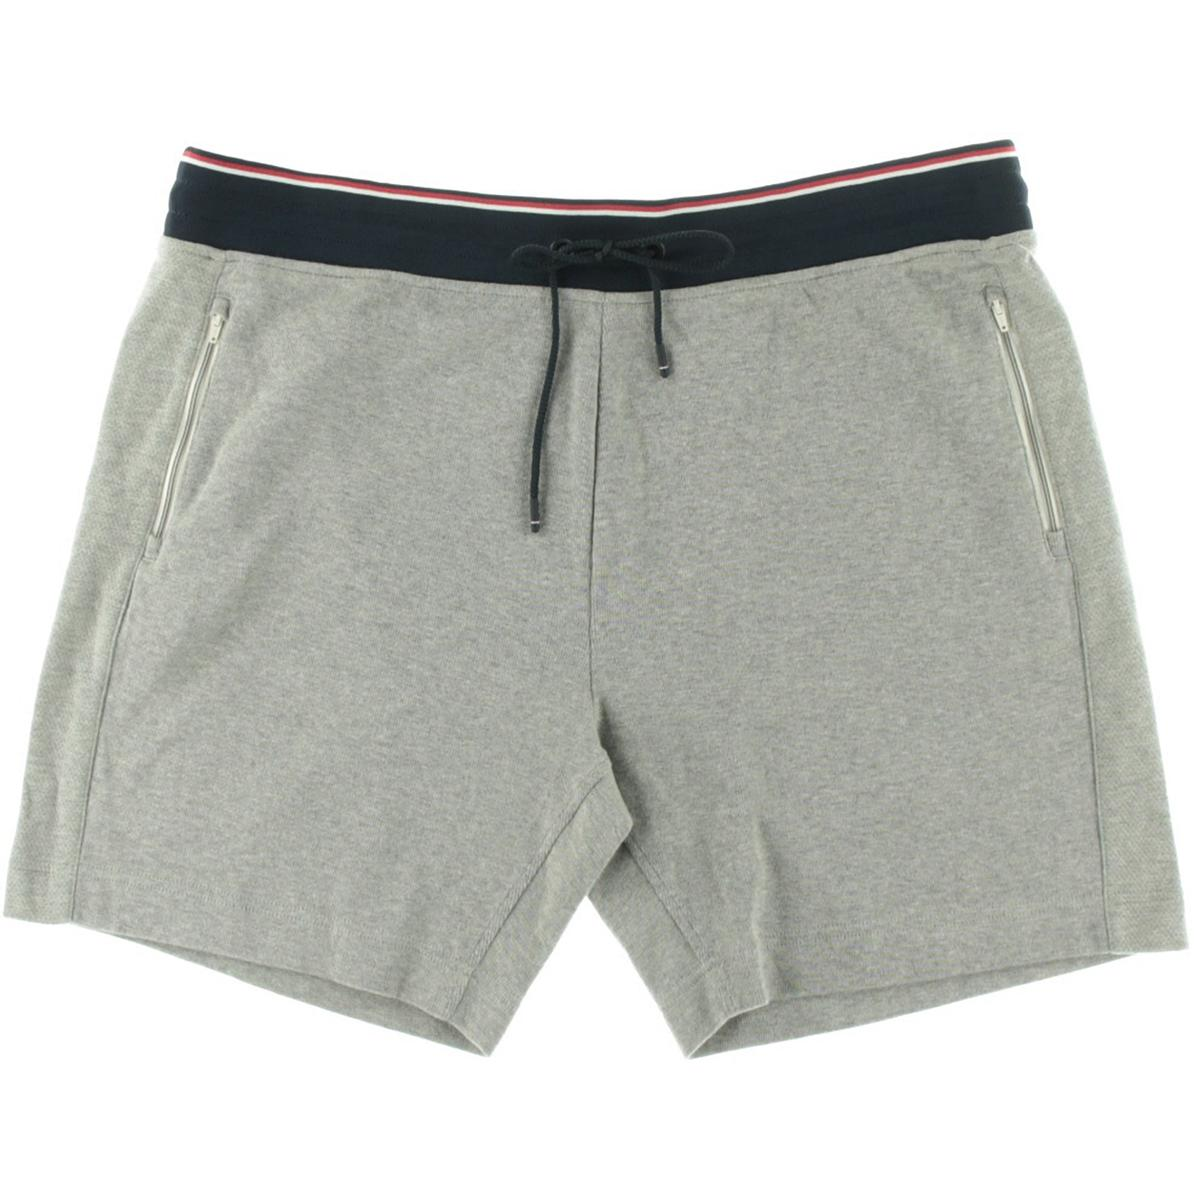 tommy hilfiger 5708 mens perforated track pull on athletic shorts bhfo ebay. Black Bedroom Furniture Sets. Home Design Ideas